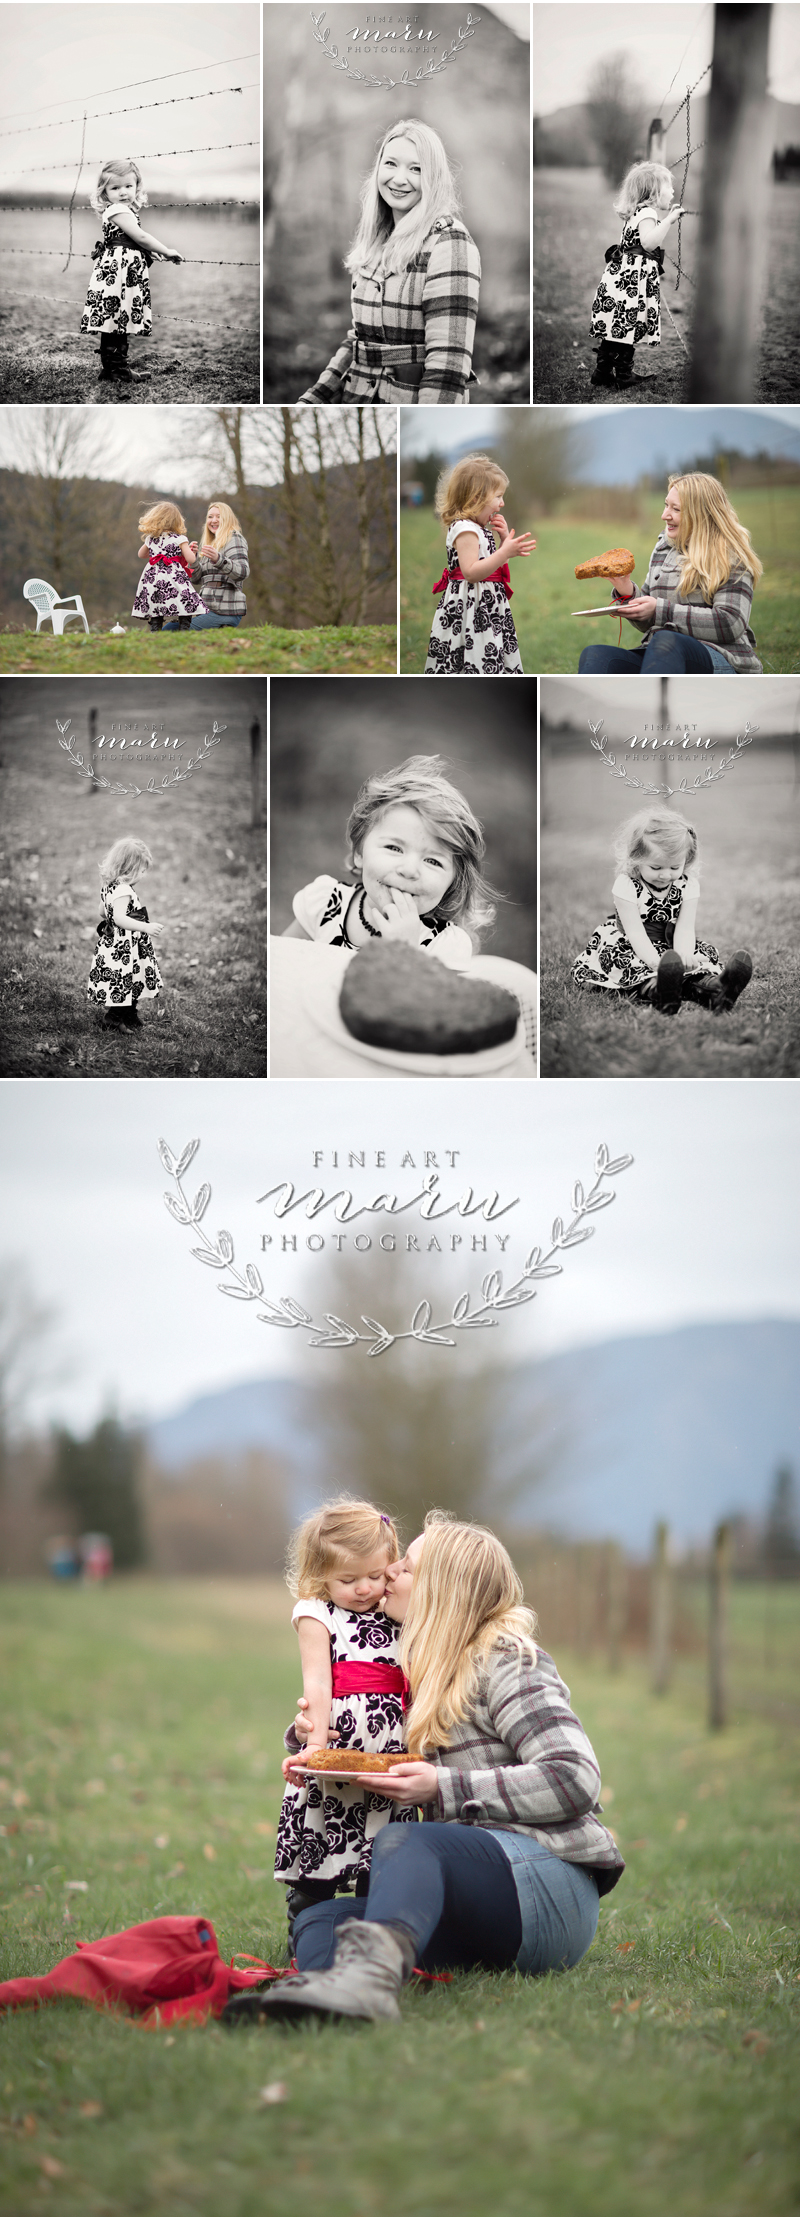 tea for two styled photoshoot | children's photography | vancouver fine art lifestyle photographer